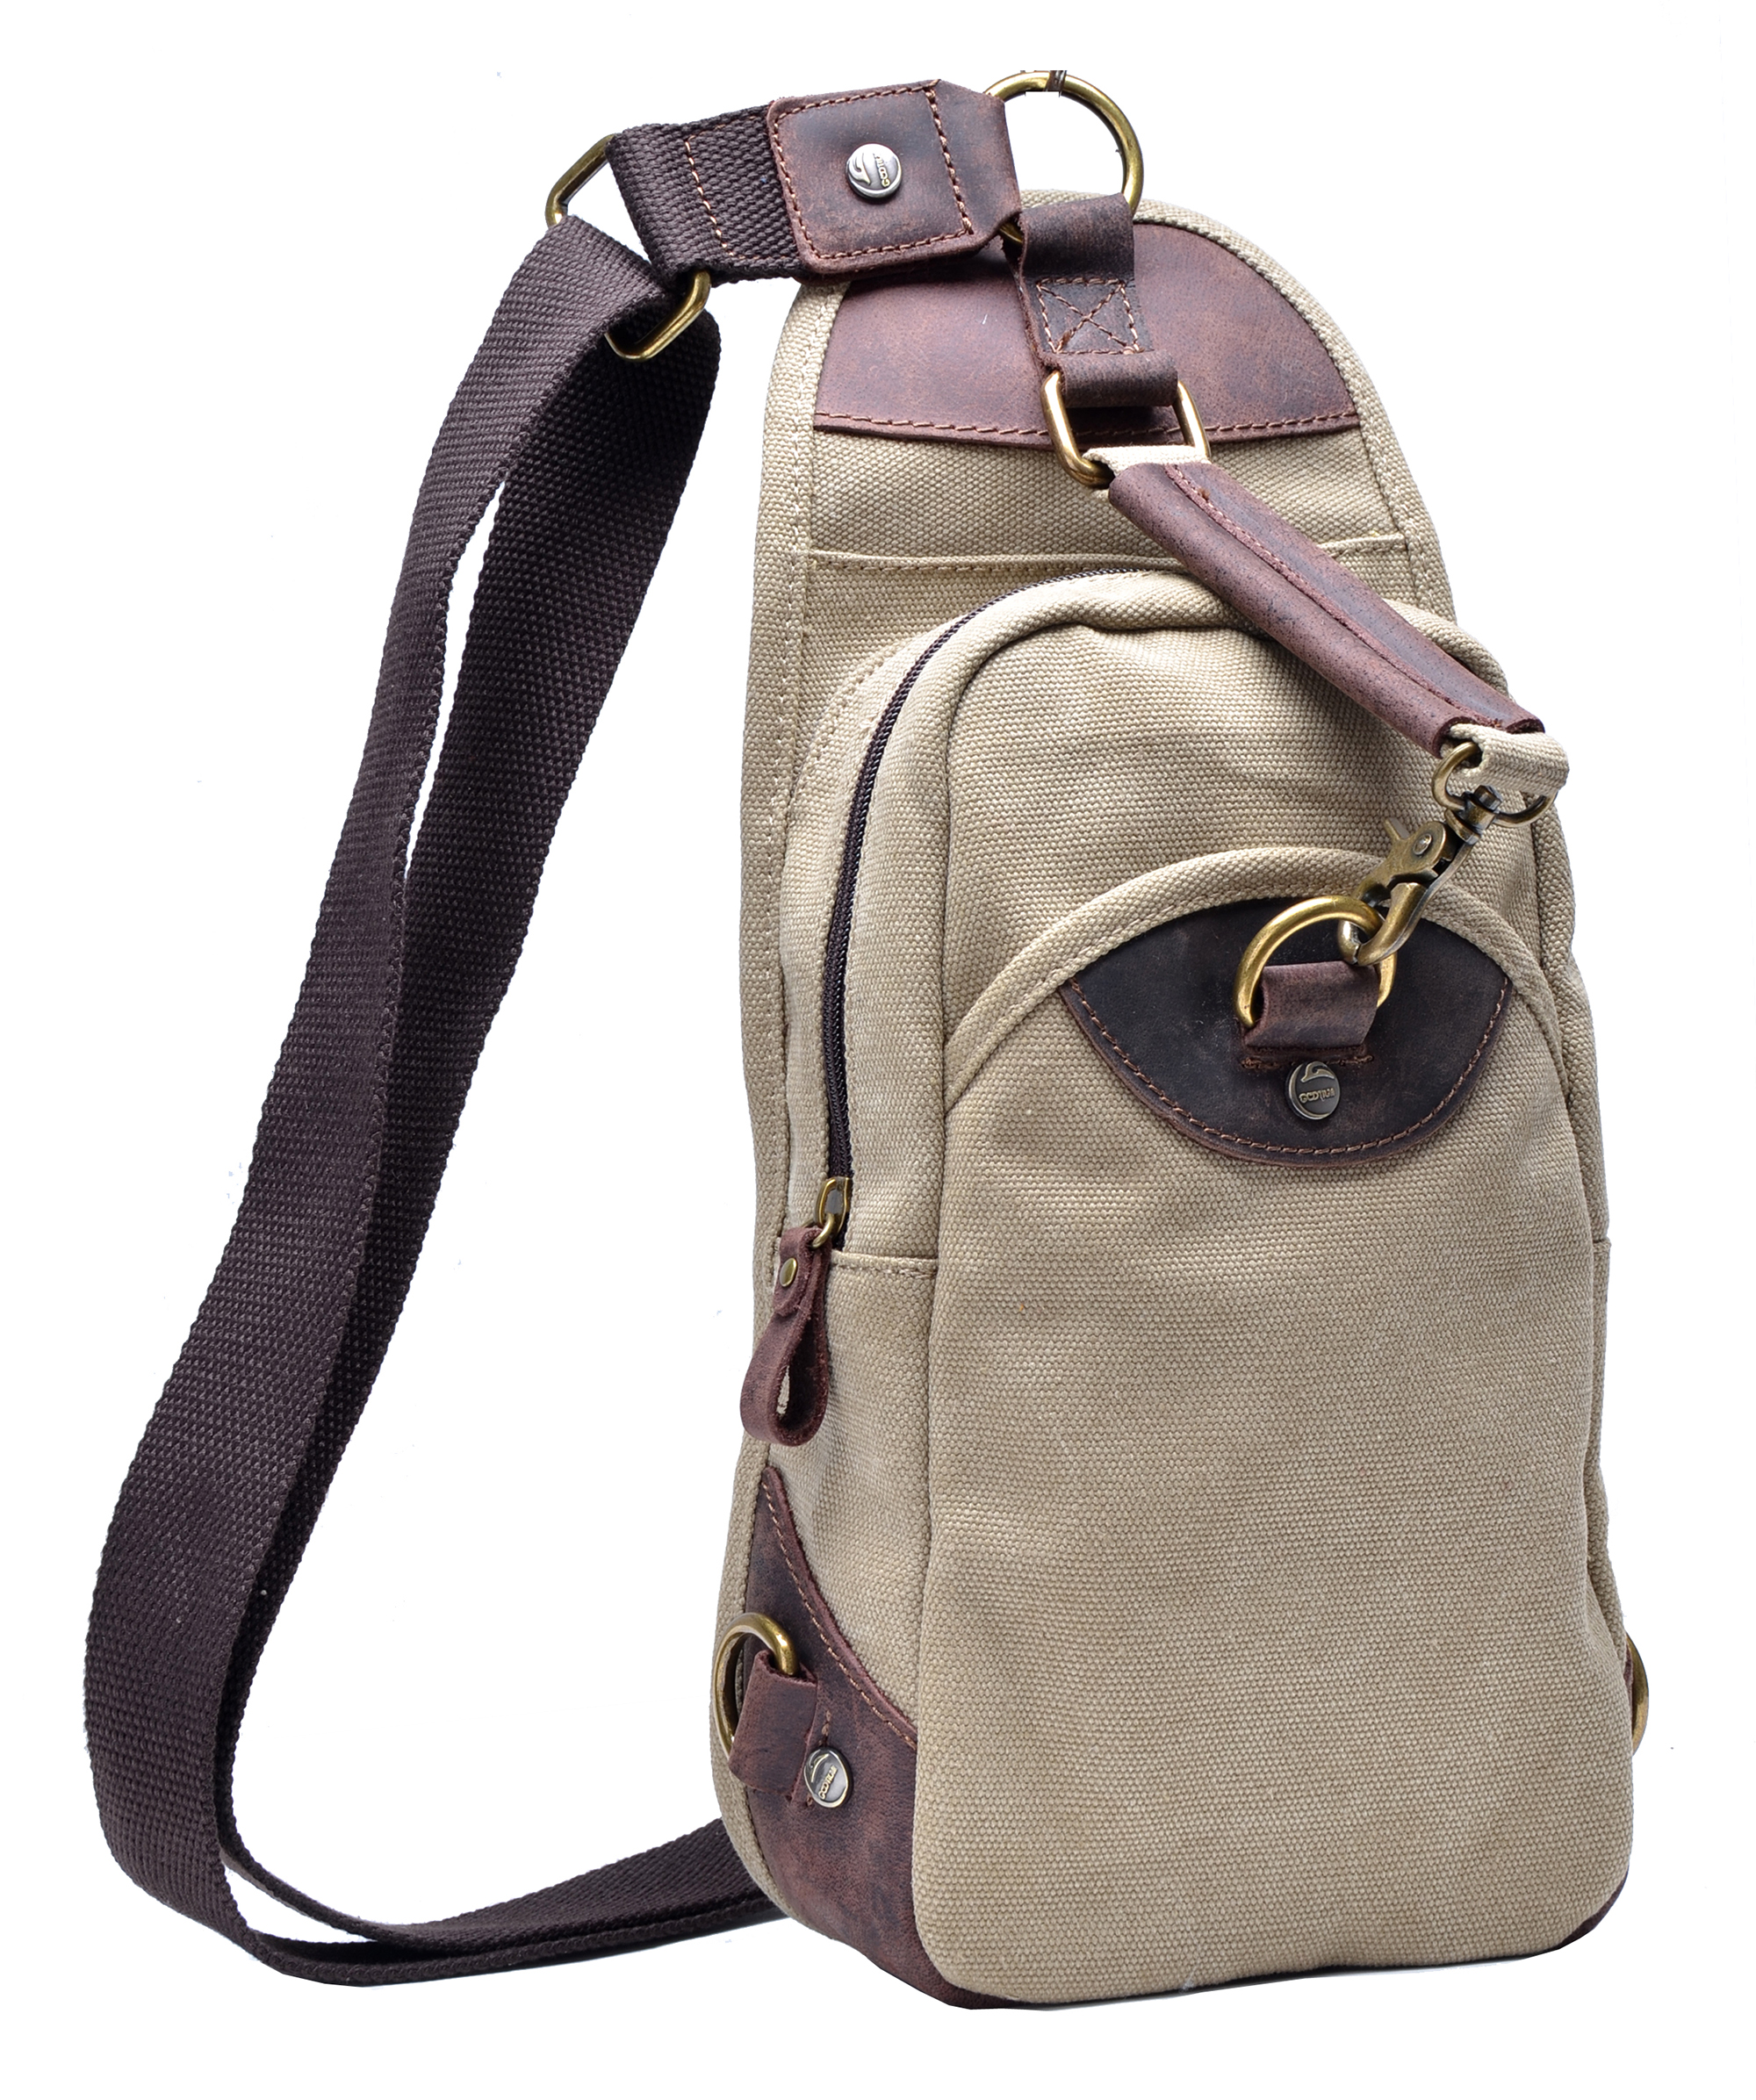 Sling bag leather - Gootium Mens Canvas Genuine Leather Cross Body Chest